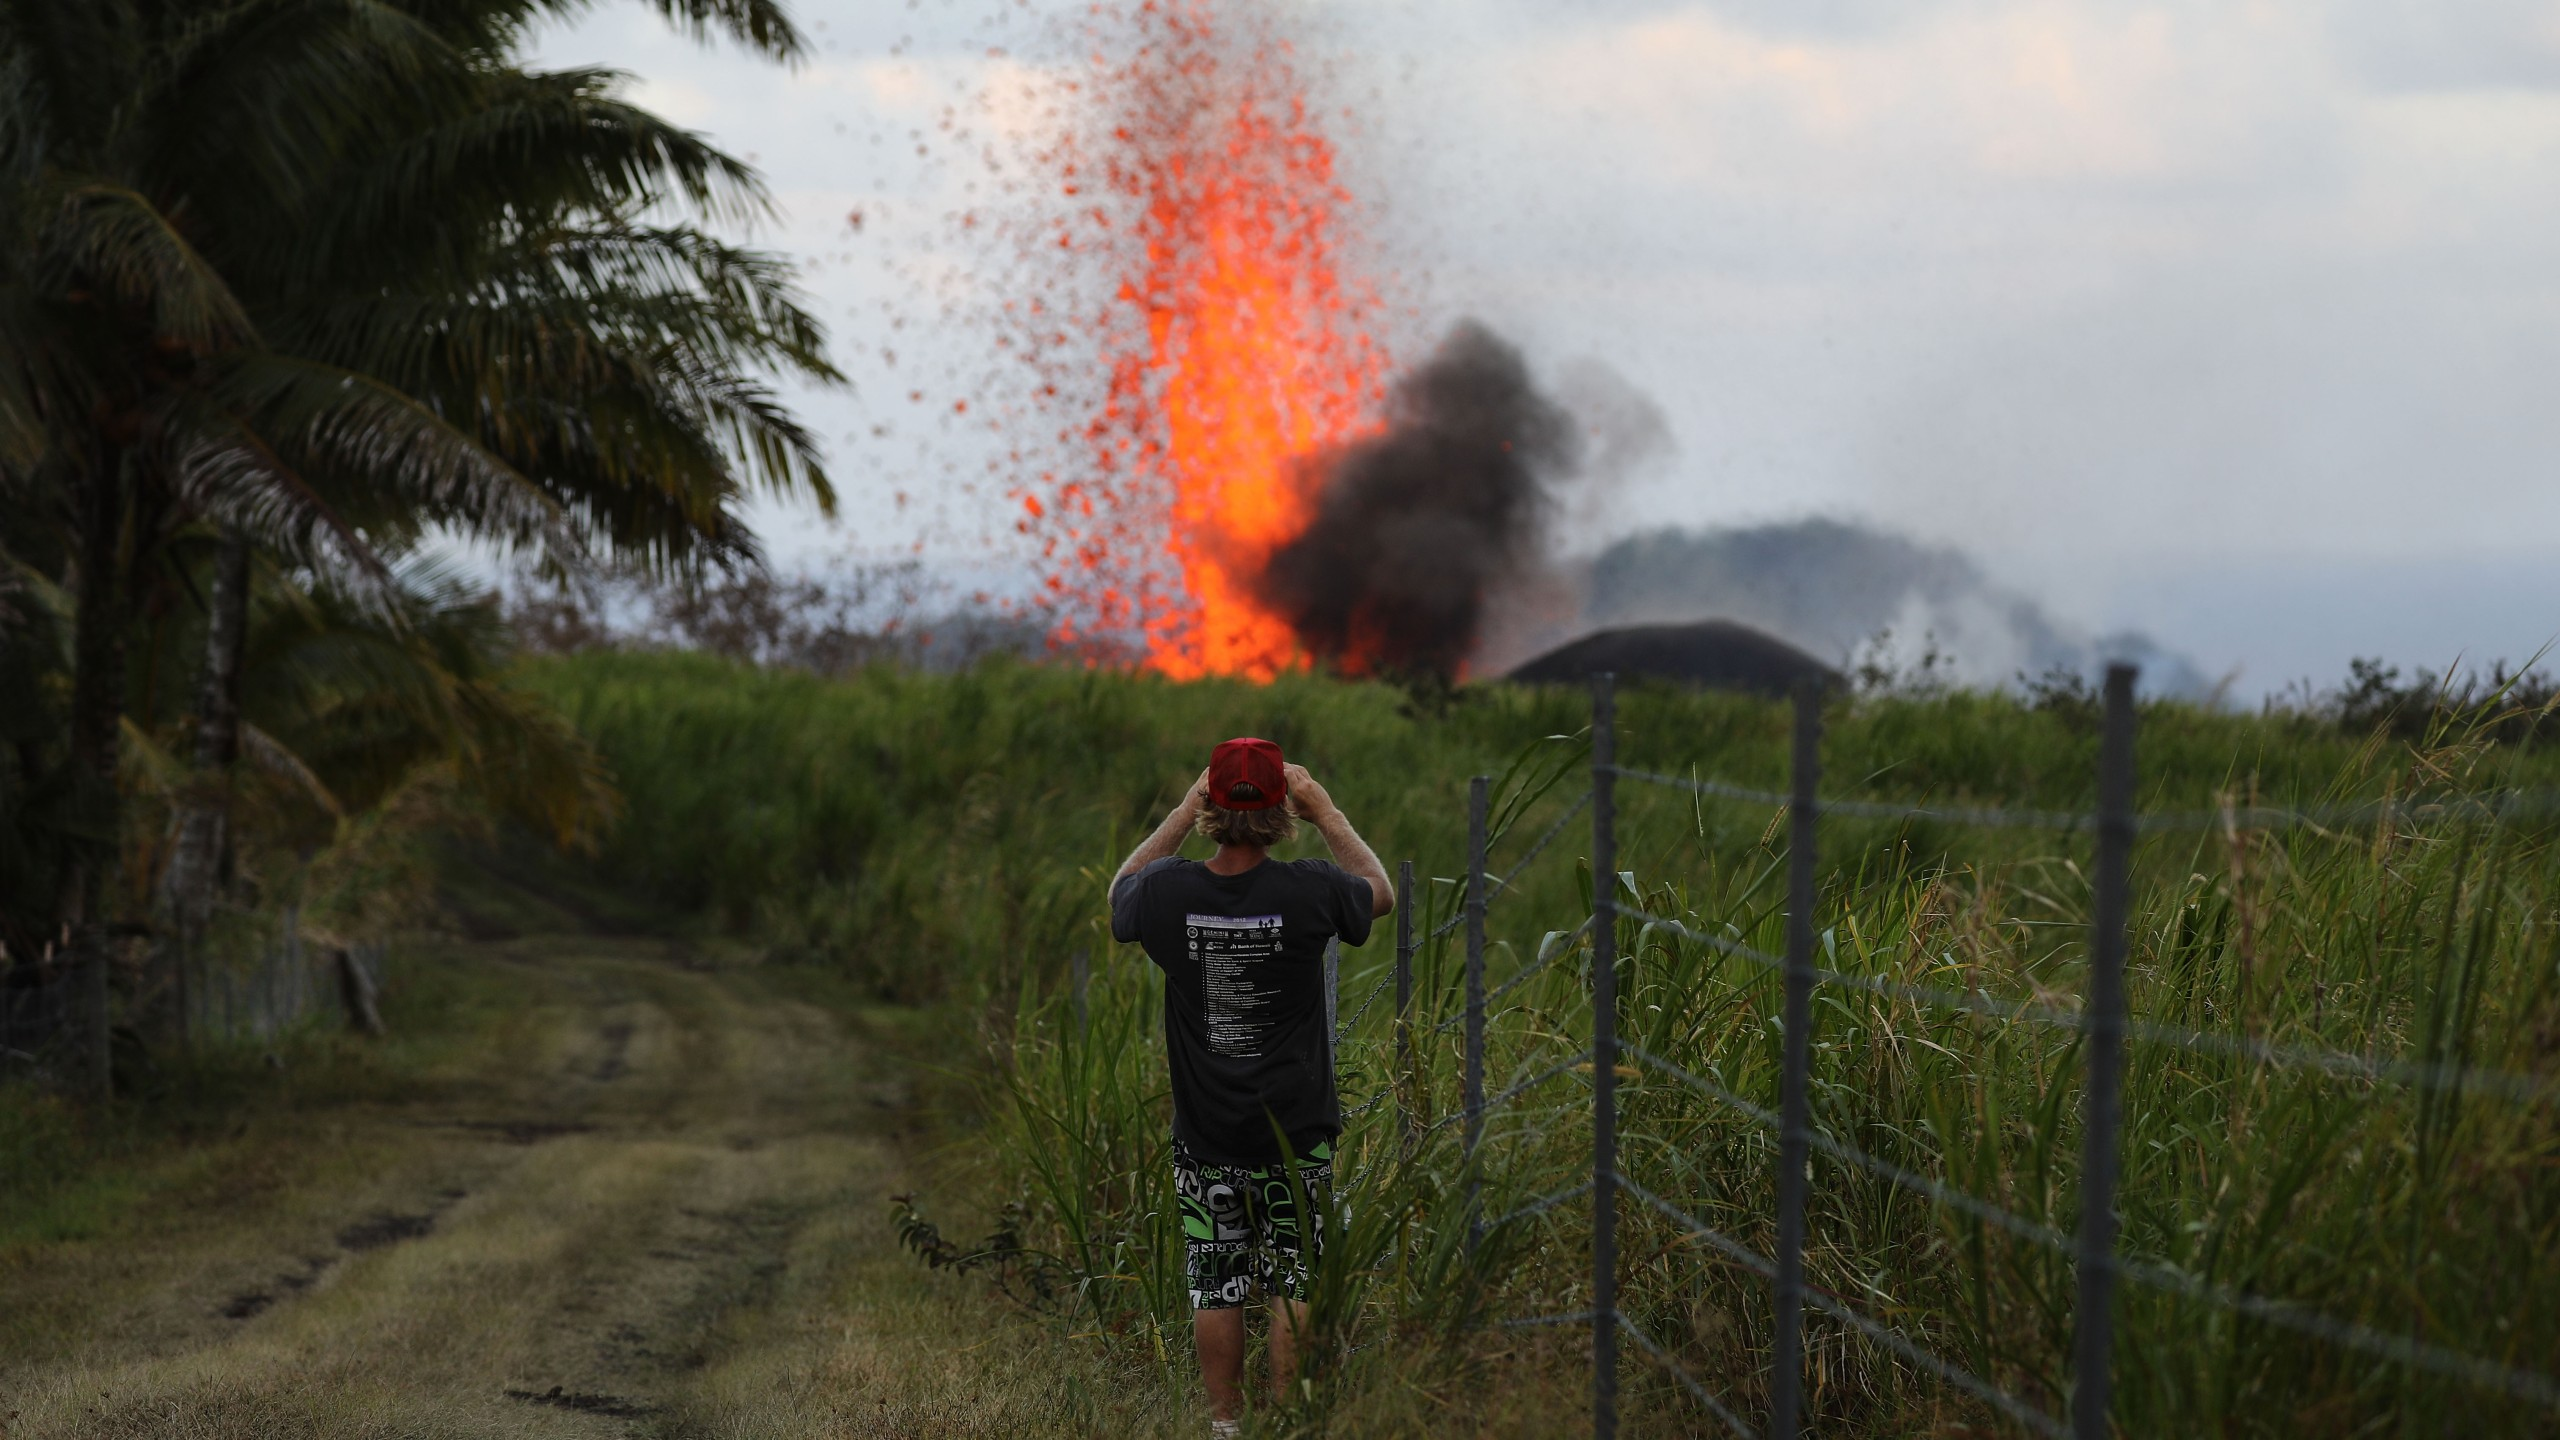 A man takes a photo of a lava fountain from a Kilauea volcano fissure on Hawaii's Big Island on May 18, 2018, in Kapoho, Hawaii. (Credit: Mario Tama/Getty Images)